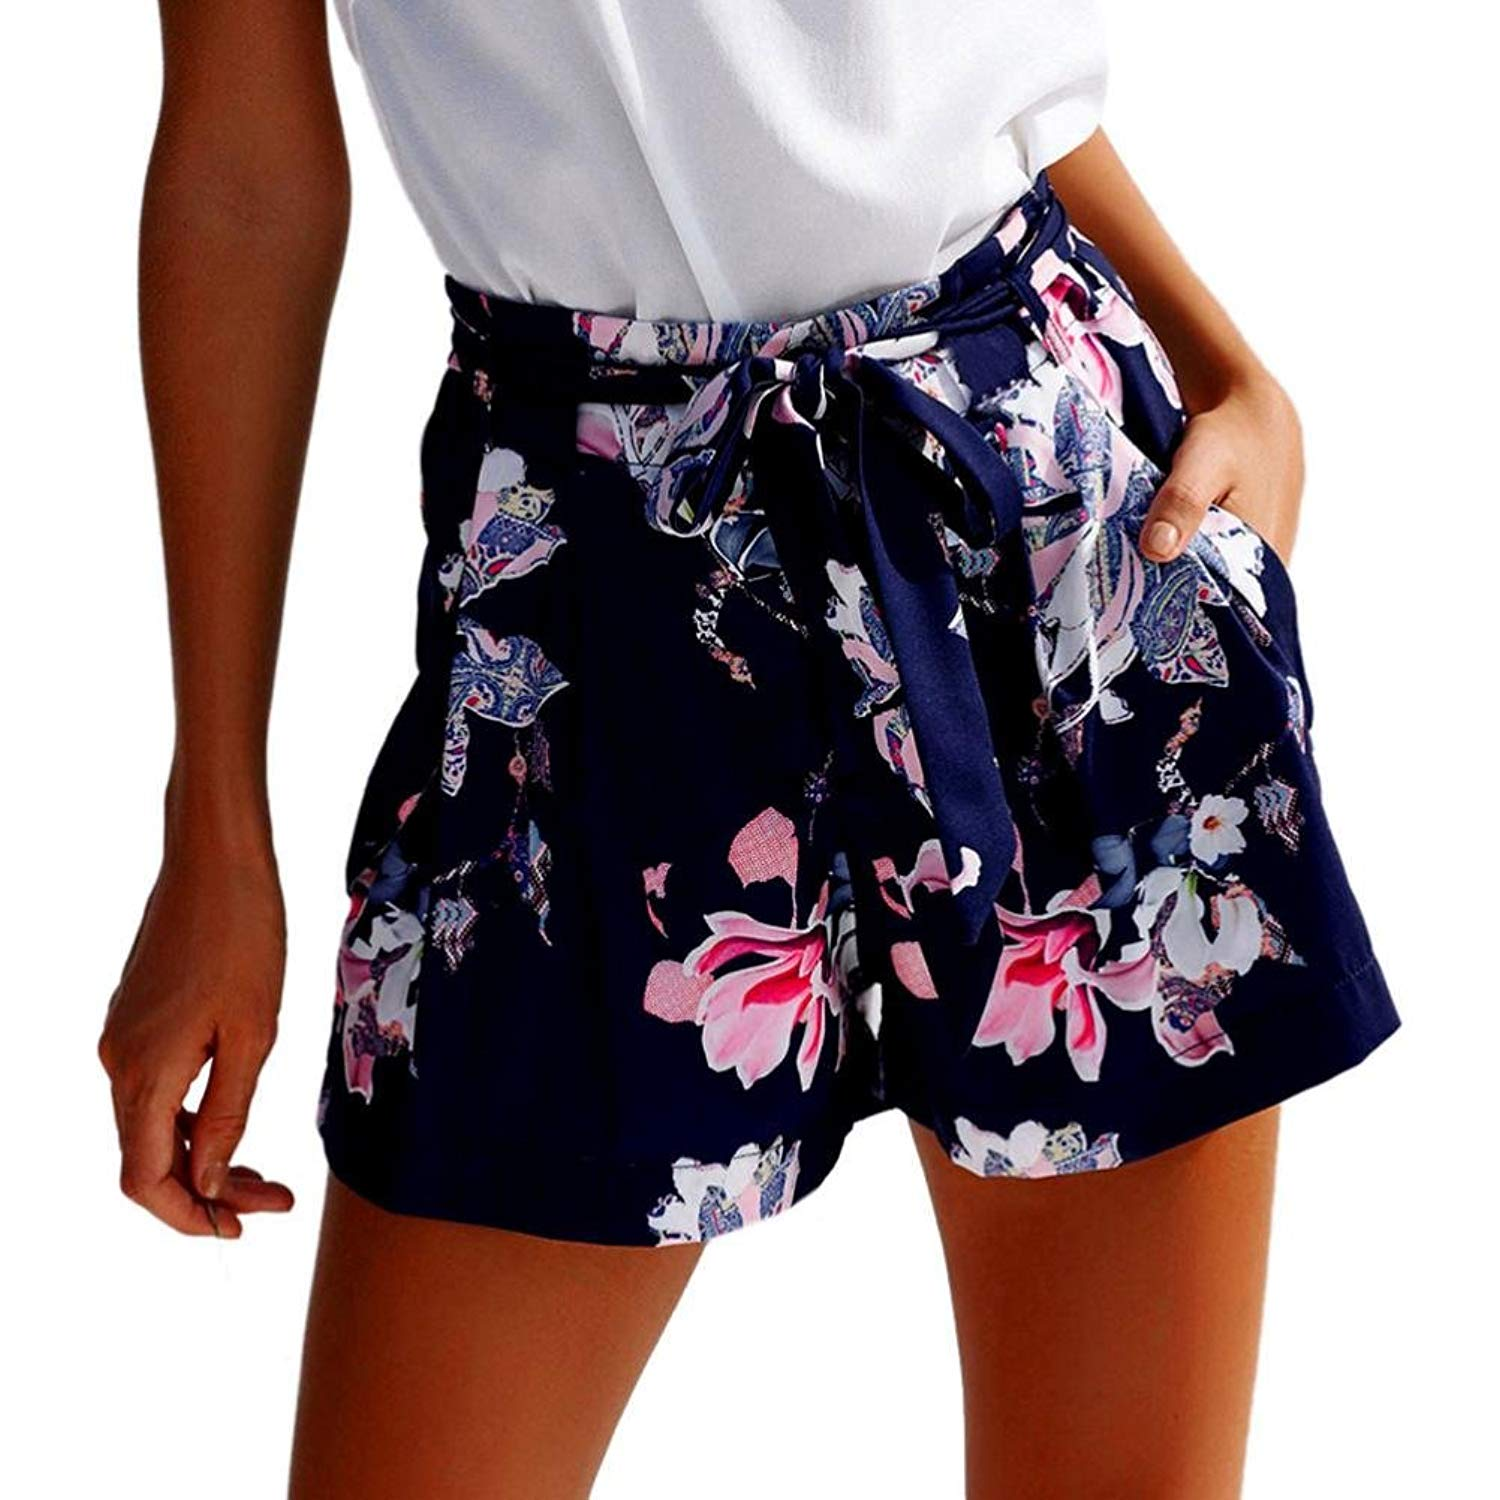 3a55d079b42 Get Quotations · 2018 Fashion!Women New Hot Pants Summer Floral Shorts High  Waist Short Pants Trousers